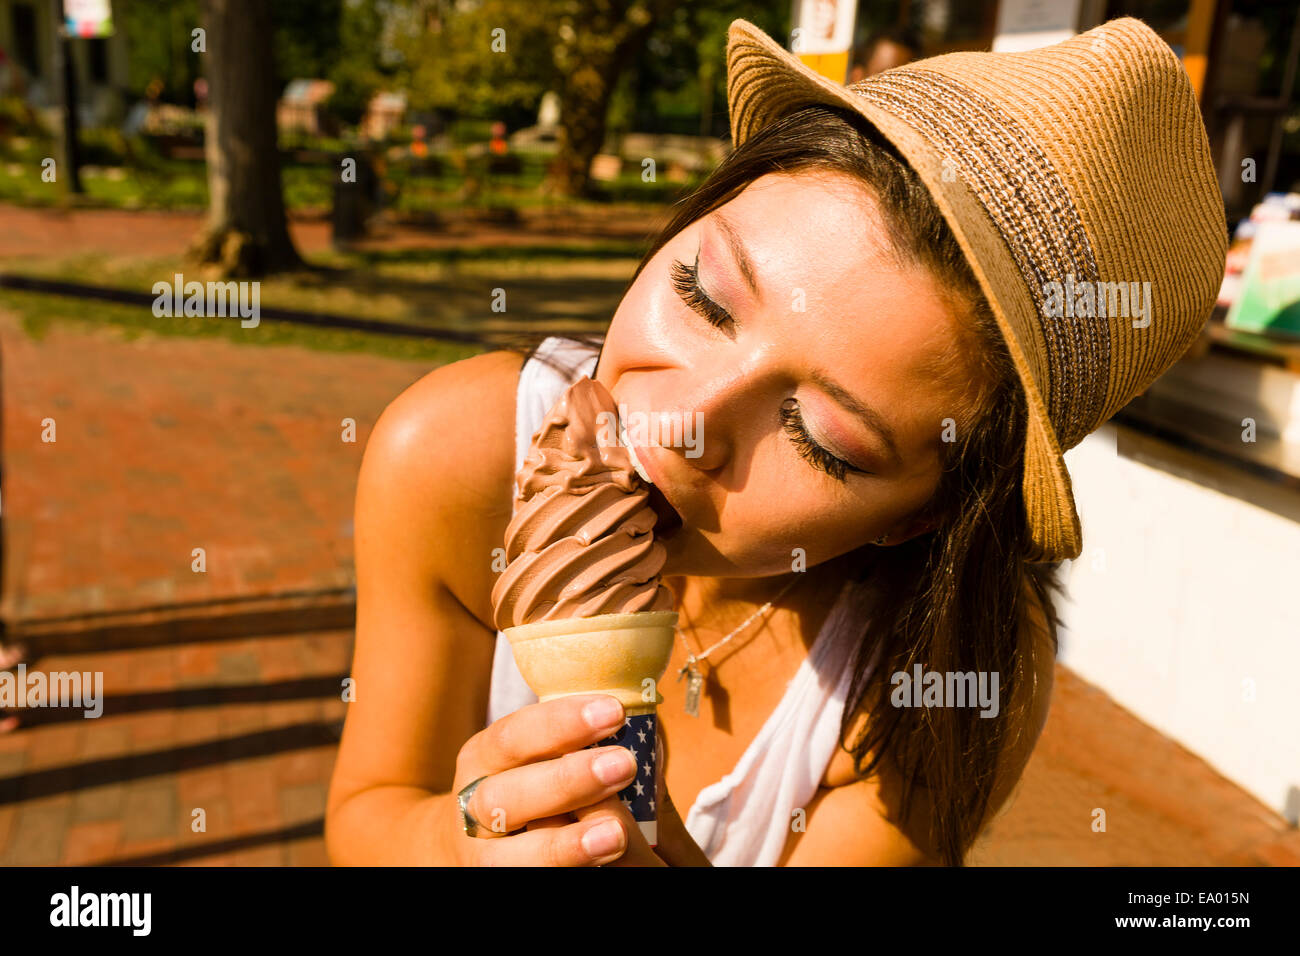 Young woman eating ice cream cone dans park Photo Stock